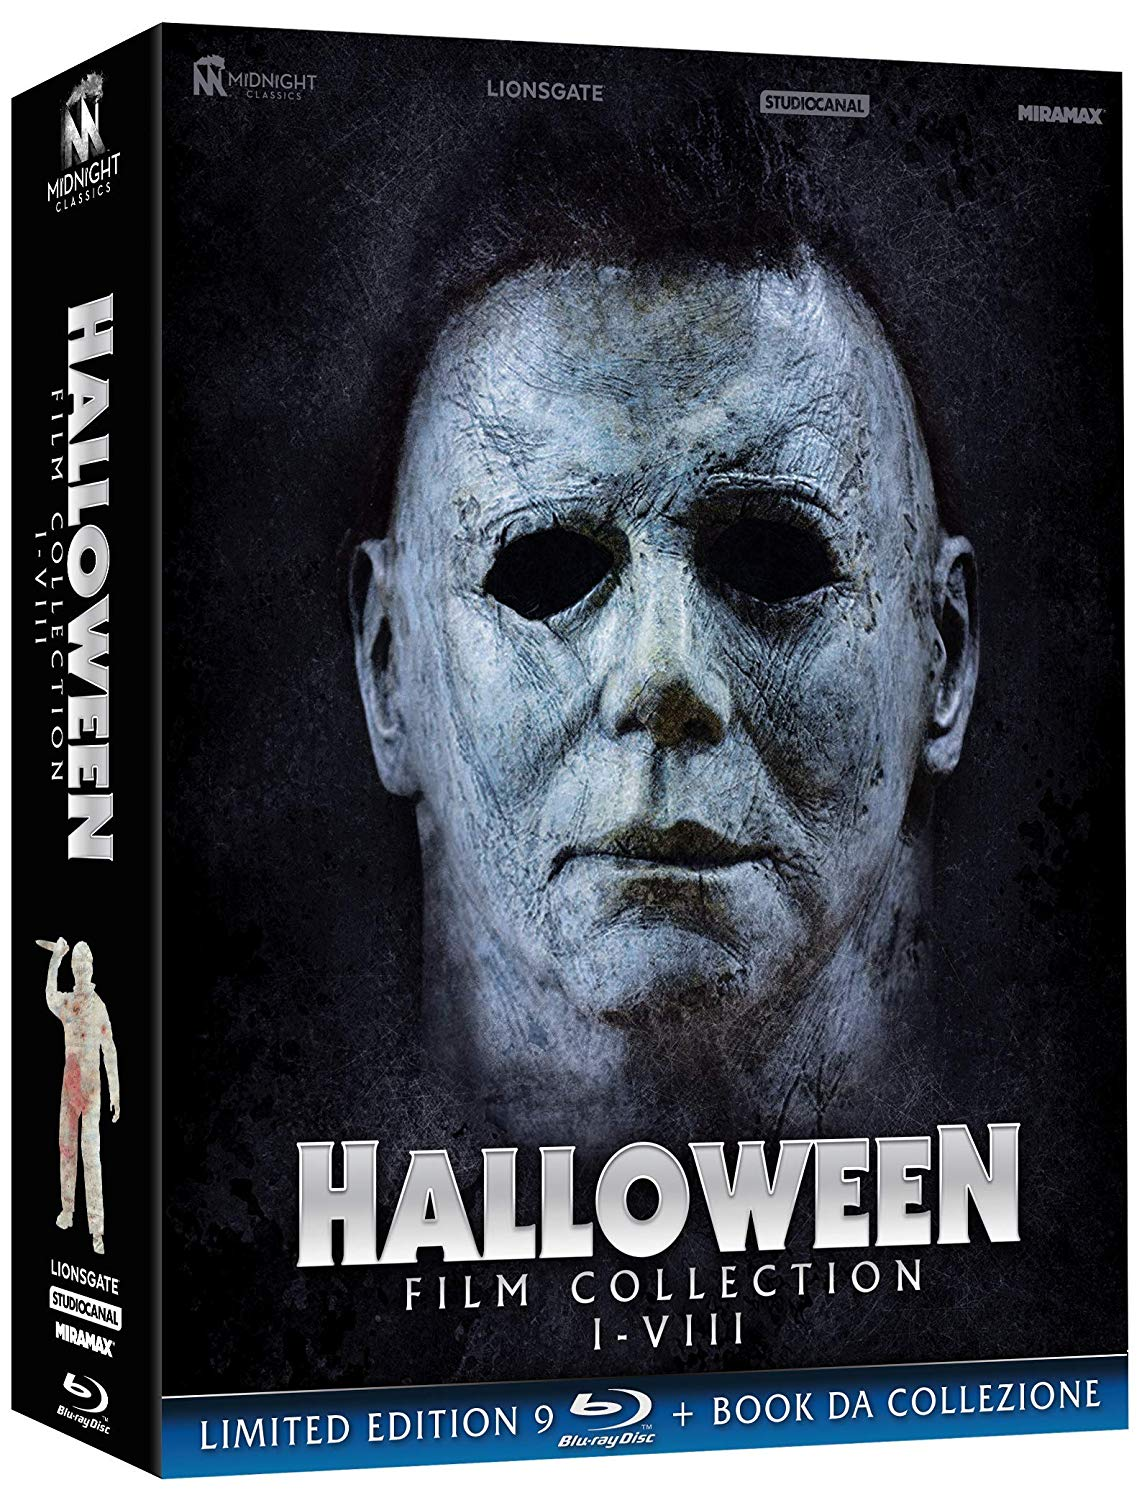 Halloween - Film collection I-VIII